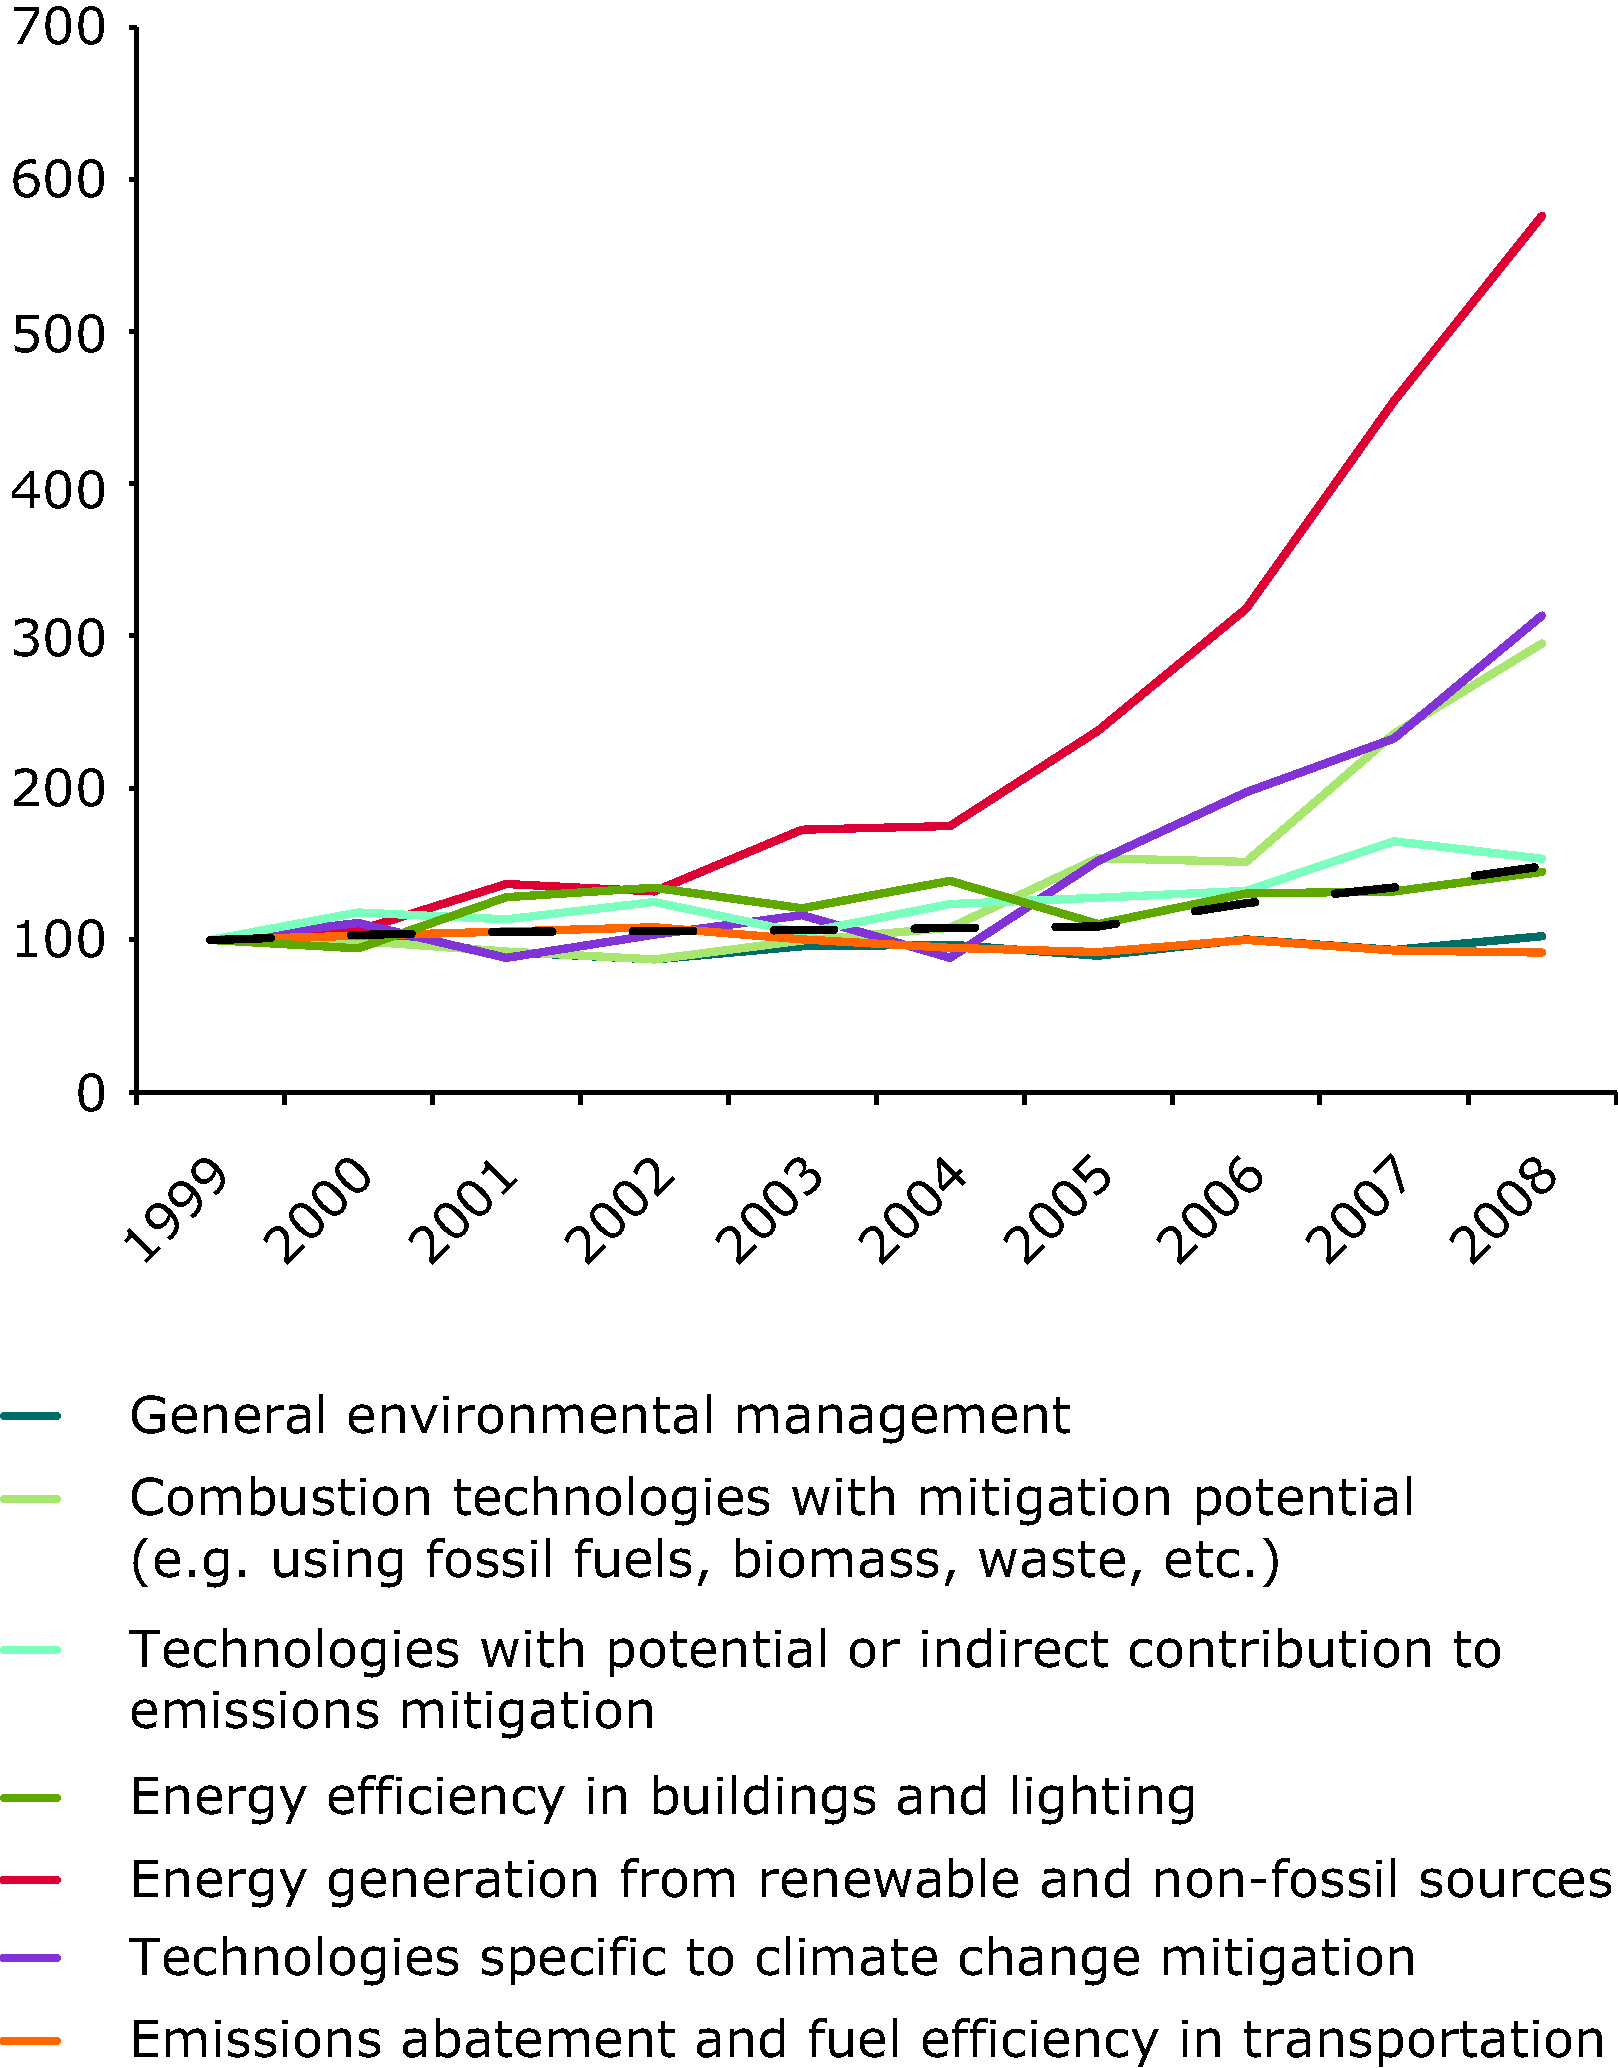 Index of environment related European patent applications, split by technology category, 1999-2008